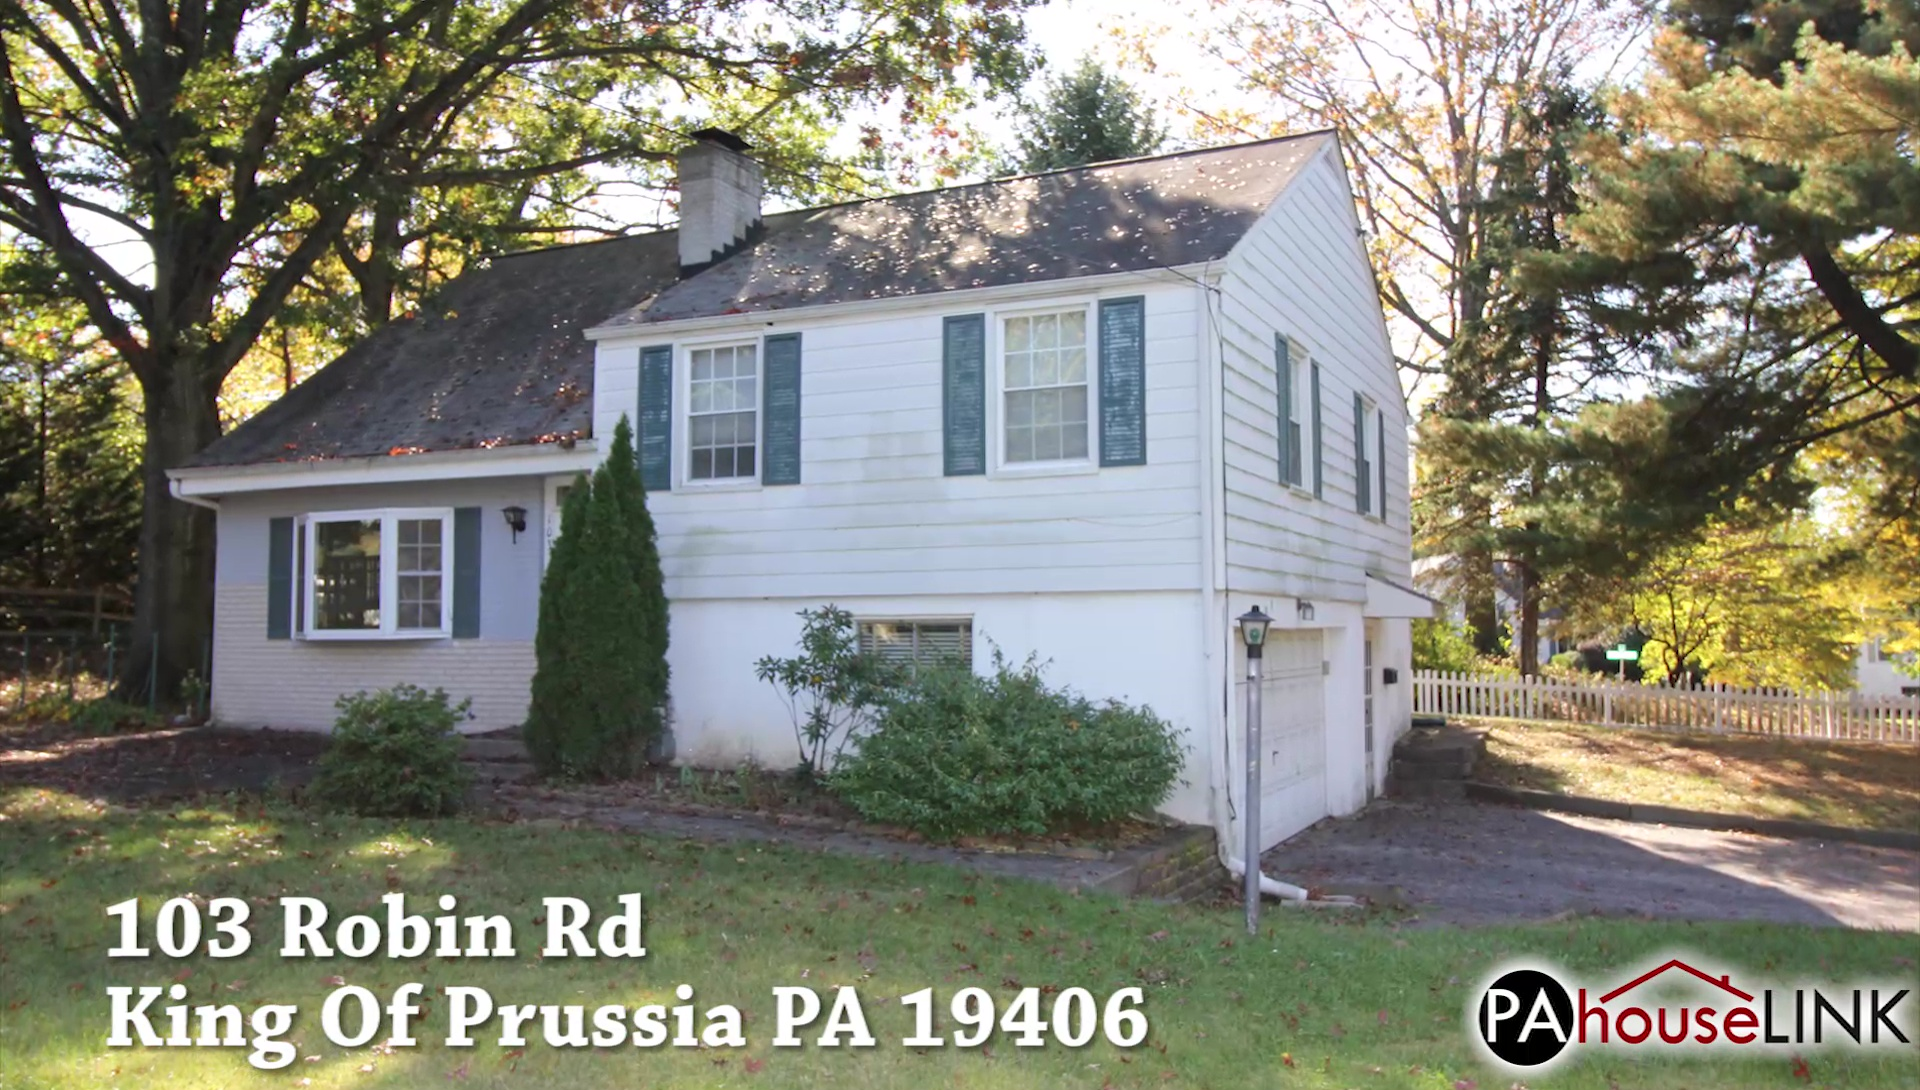 103 Robin Rd King Of Prussia PA 19406 | Coming Soon Foreclosure Properties King Of Prussia PA 19406